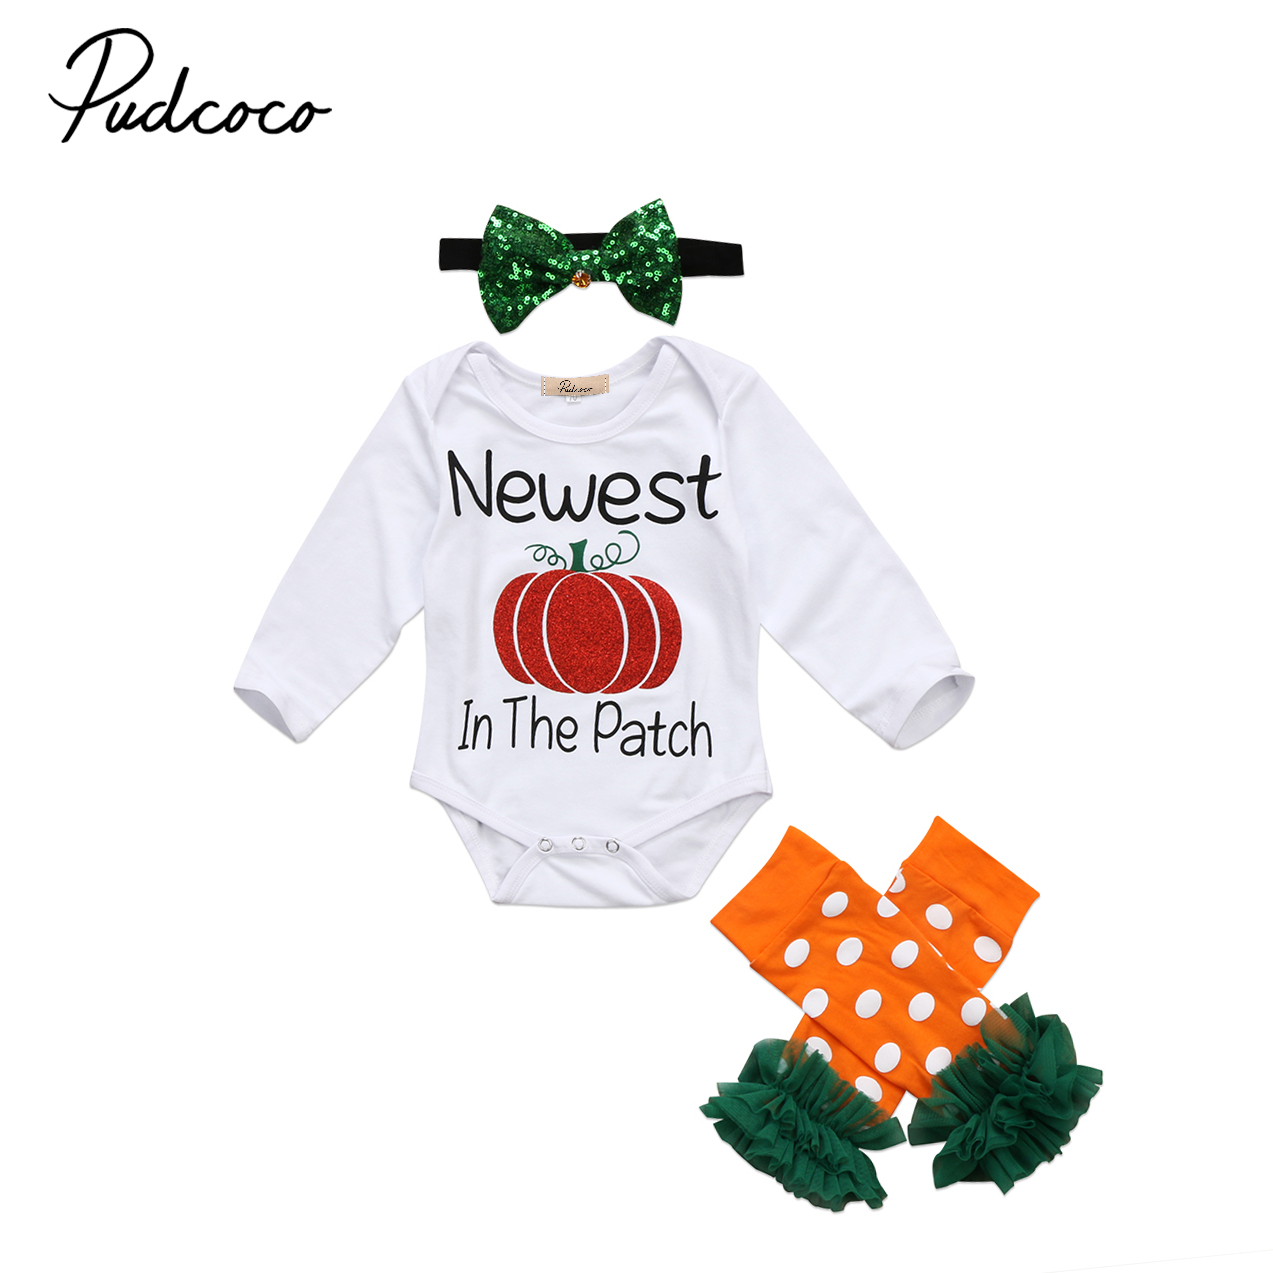 2017 Brand New 3pcs Newborn Toddler Infant Baby Girls Clothes Long Sleeve Romper Legging Warmer Headband Outfits Halloween Sets